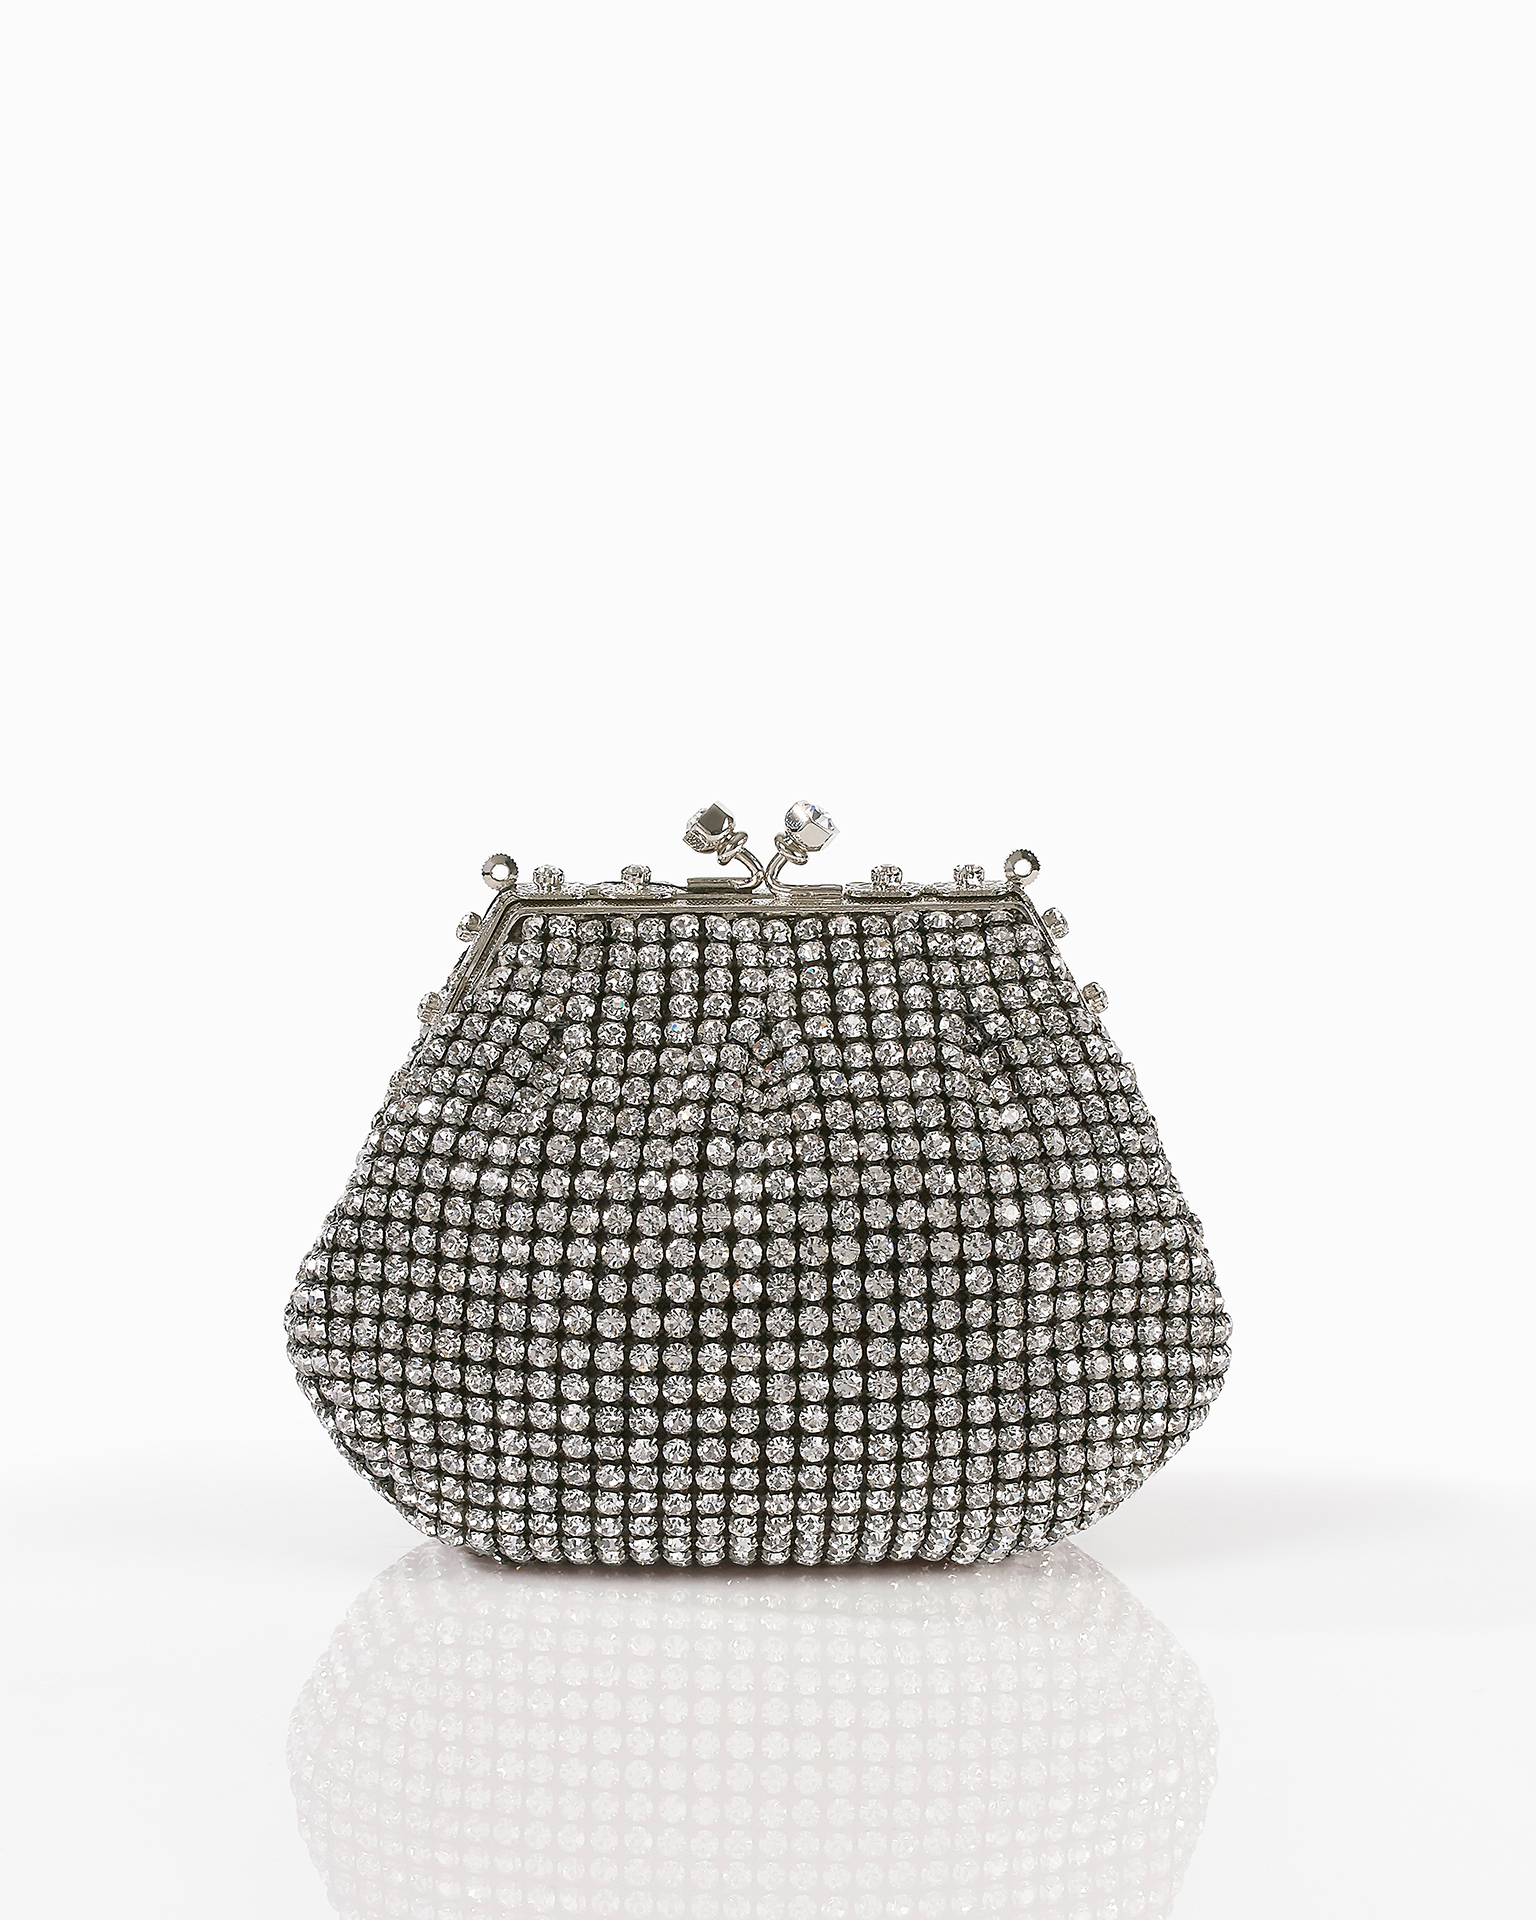 Jewelled clutch bag, in silver, black and gold. 2018 FIESTA AIRE BARCELONA Collection.